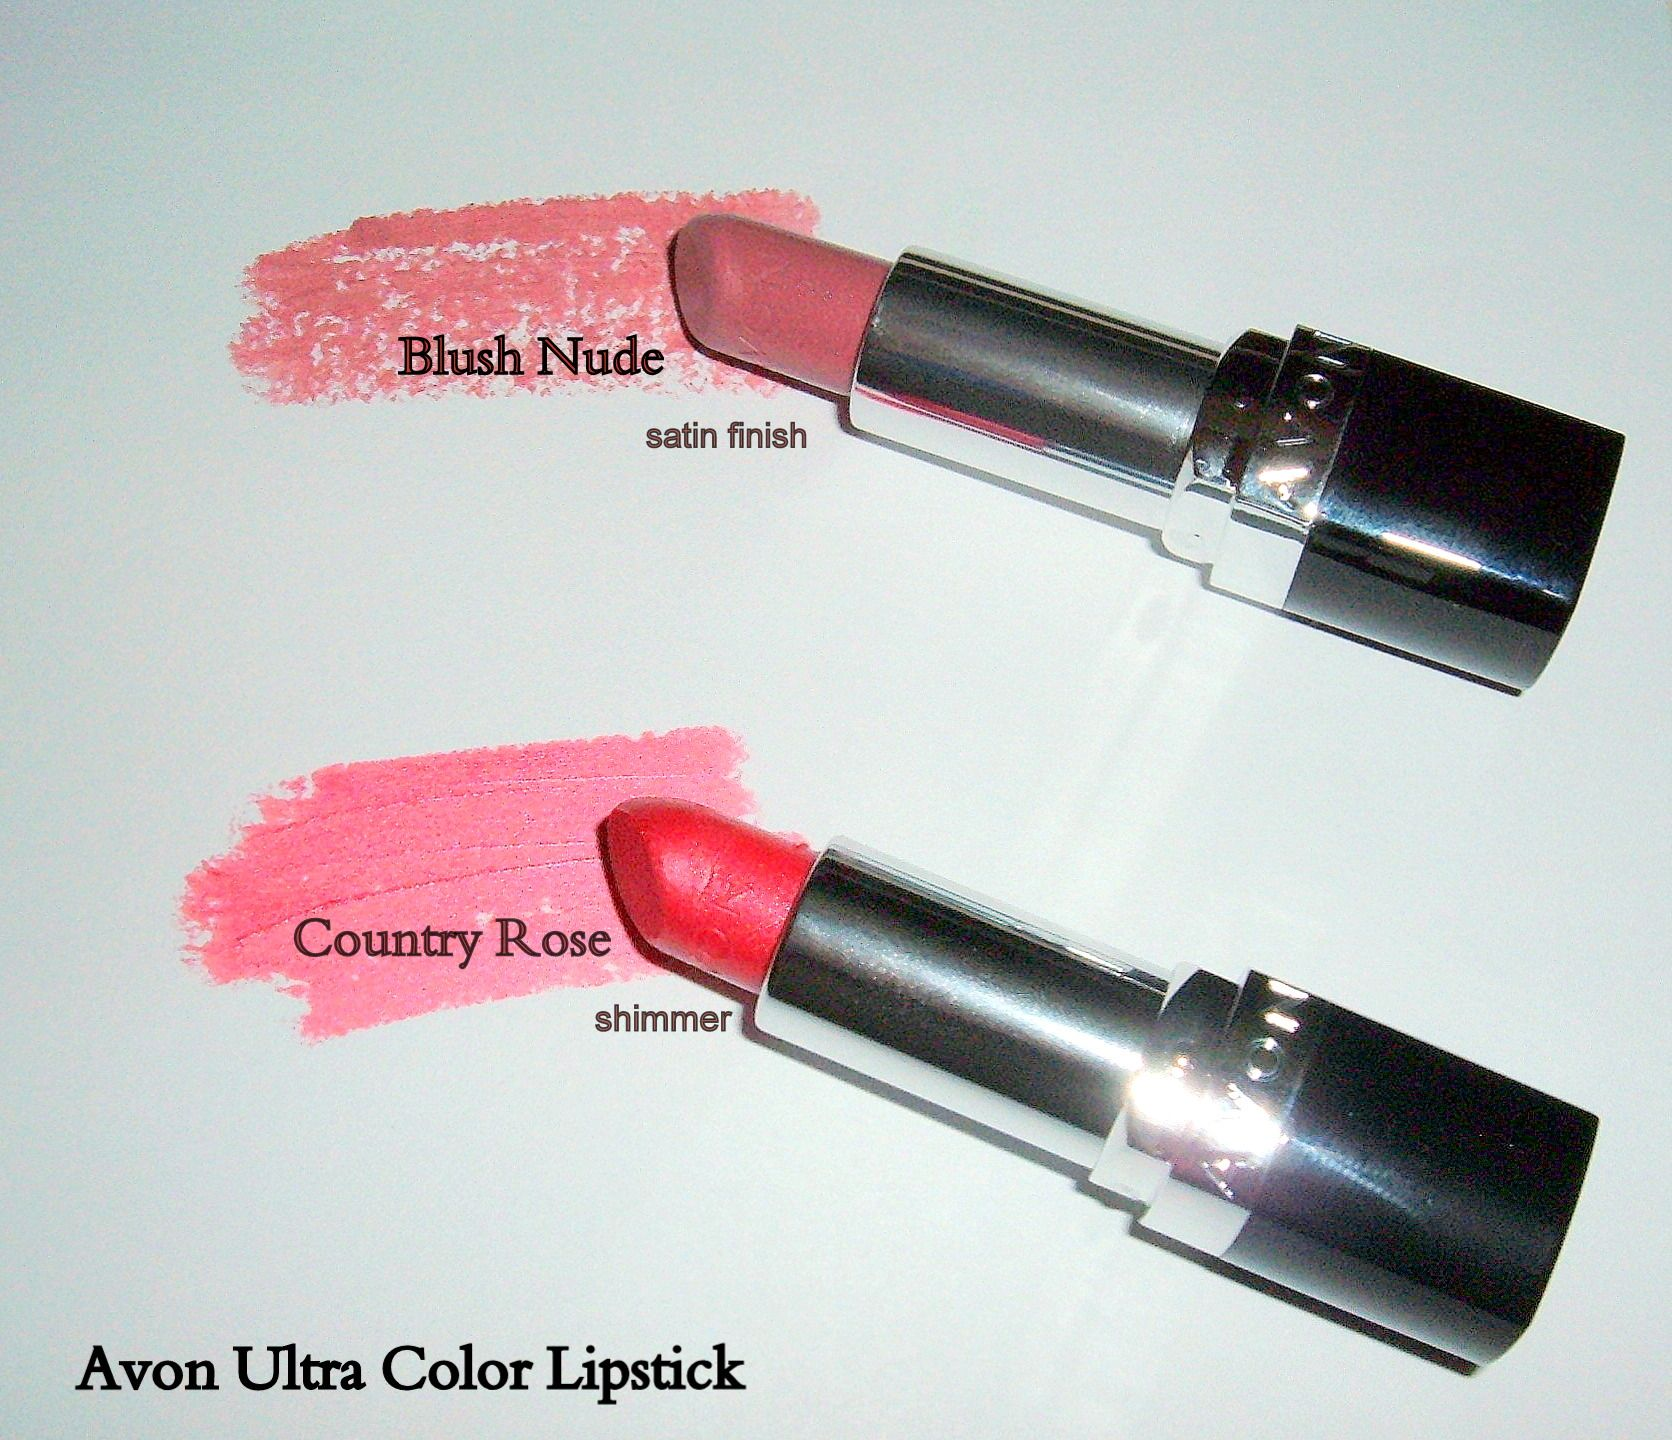 ❤ AVON ULTRA COLOR LIPSTICK. The Blush Nude is a fabulous shade ...